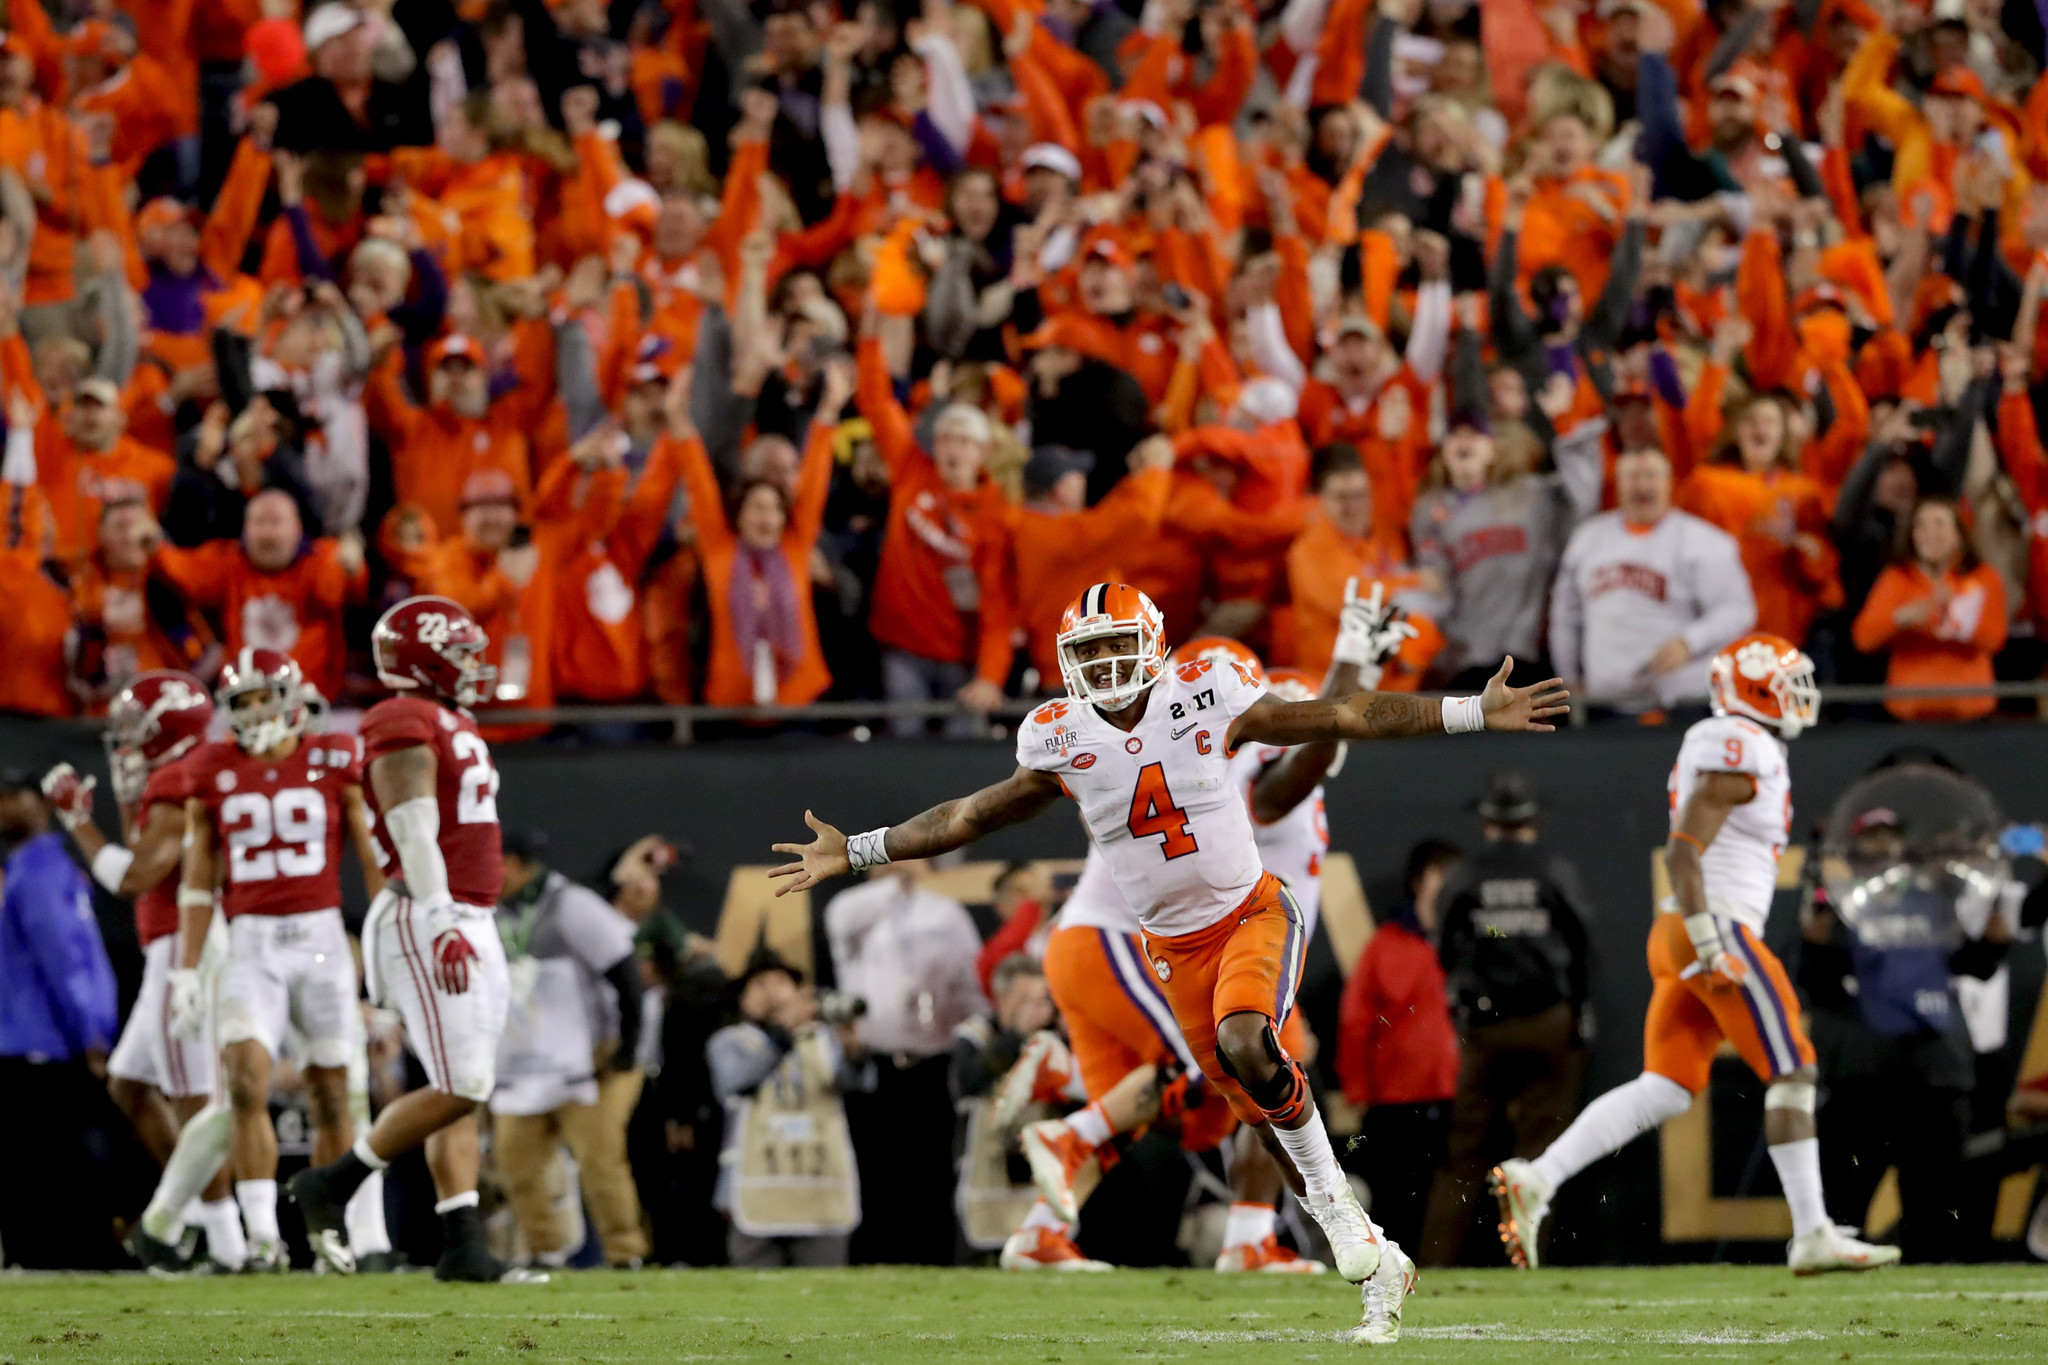 Kickoff time for national championship game - Clemson Alabama Rematch Gets A Place In The History Of Epic Games Chicago Tribune